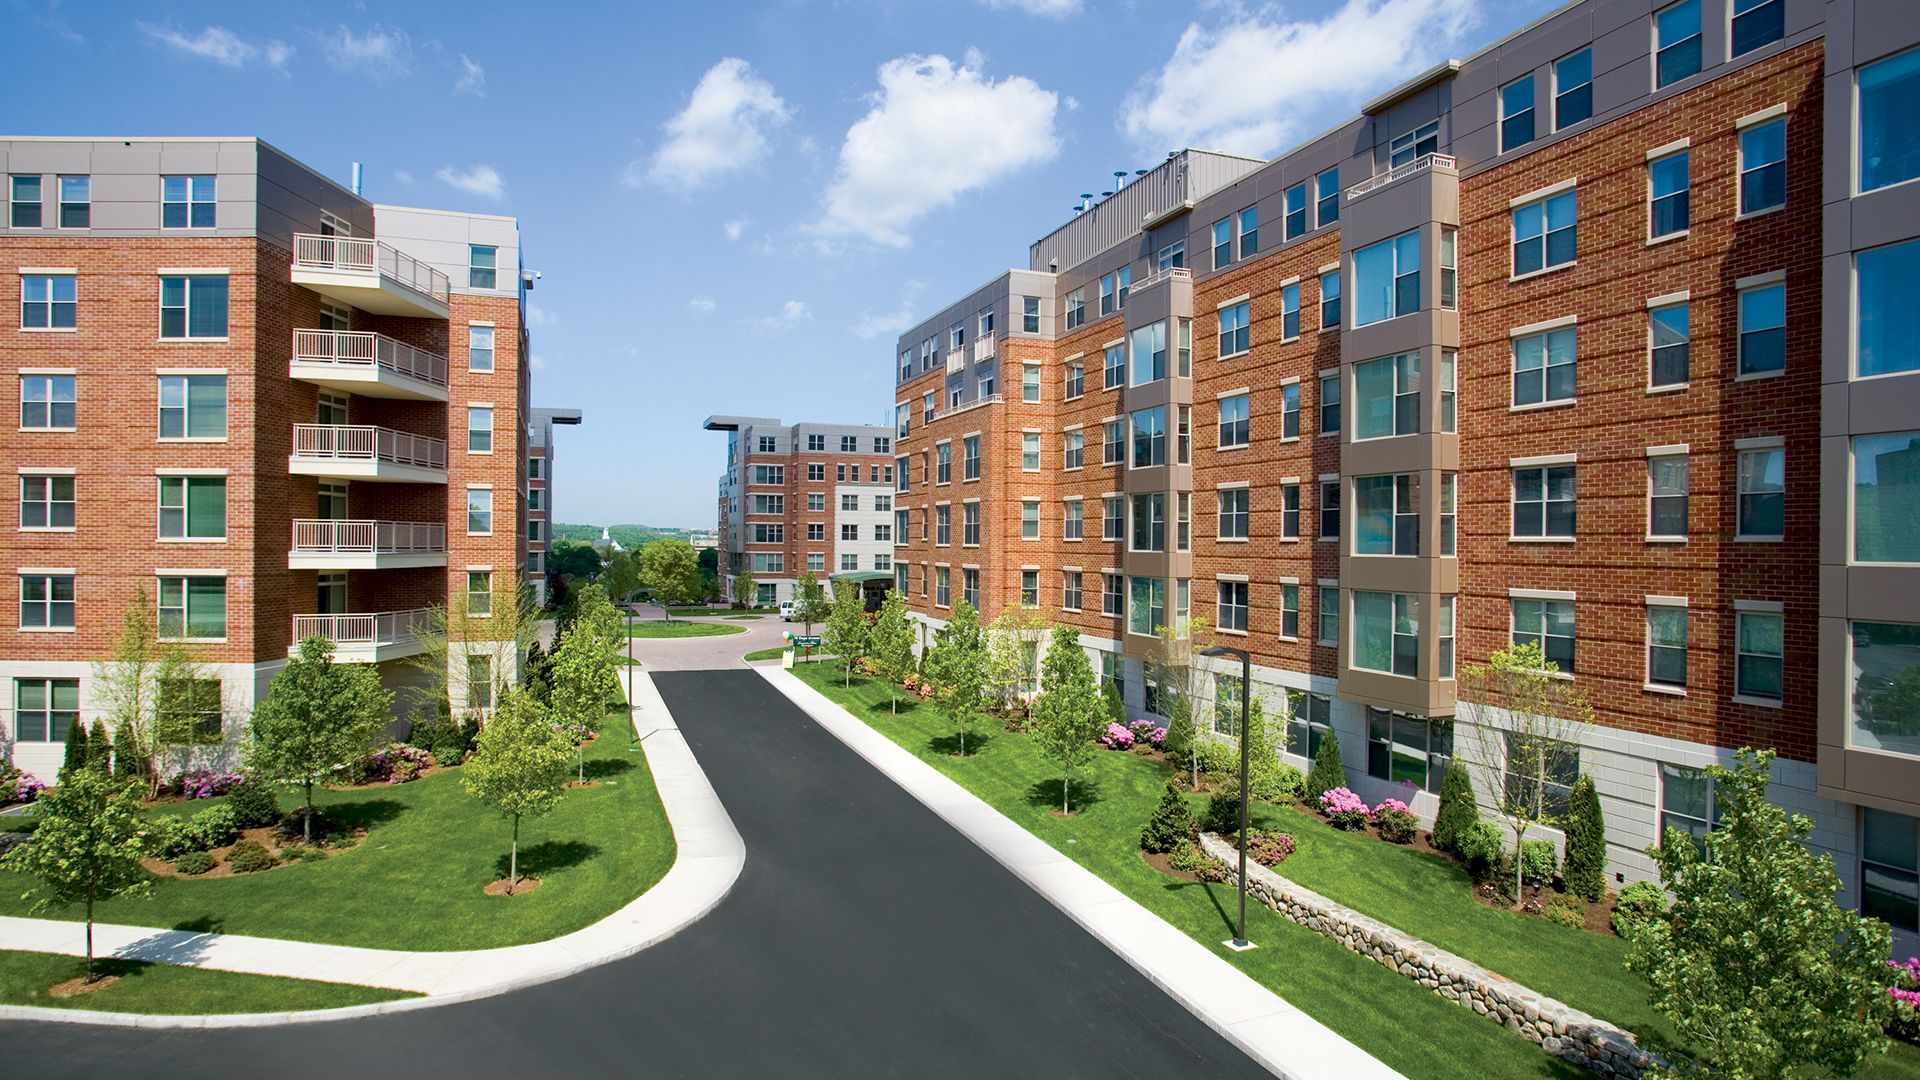 Best 5 off campus apartments for gvsu students oneclass blog for Apartment complex building plans